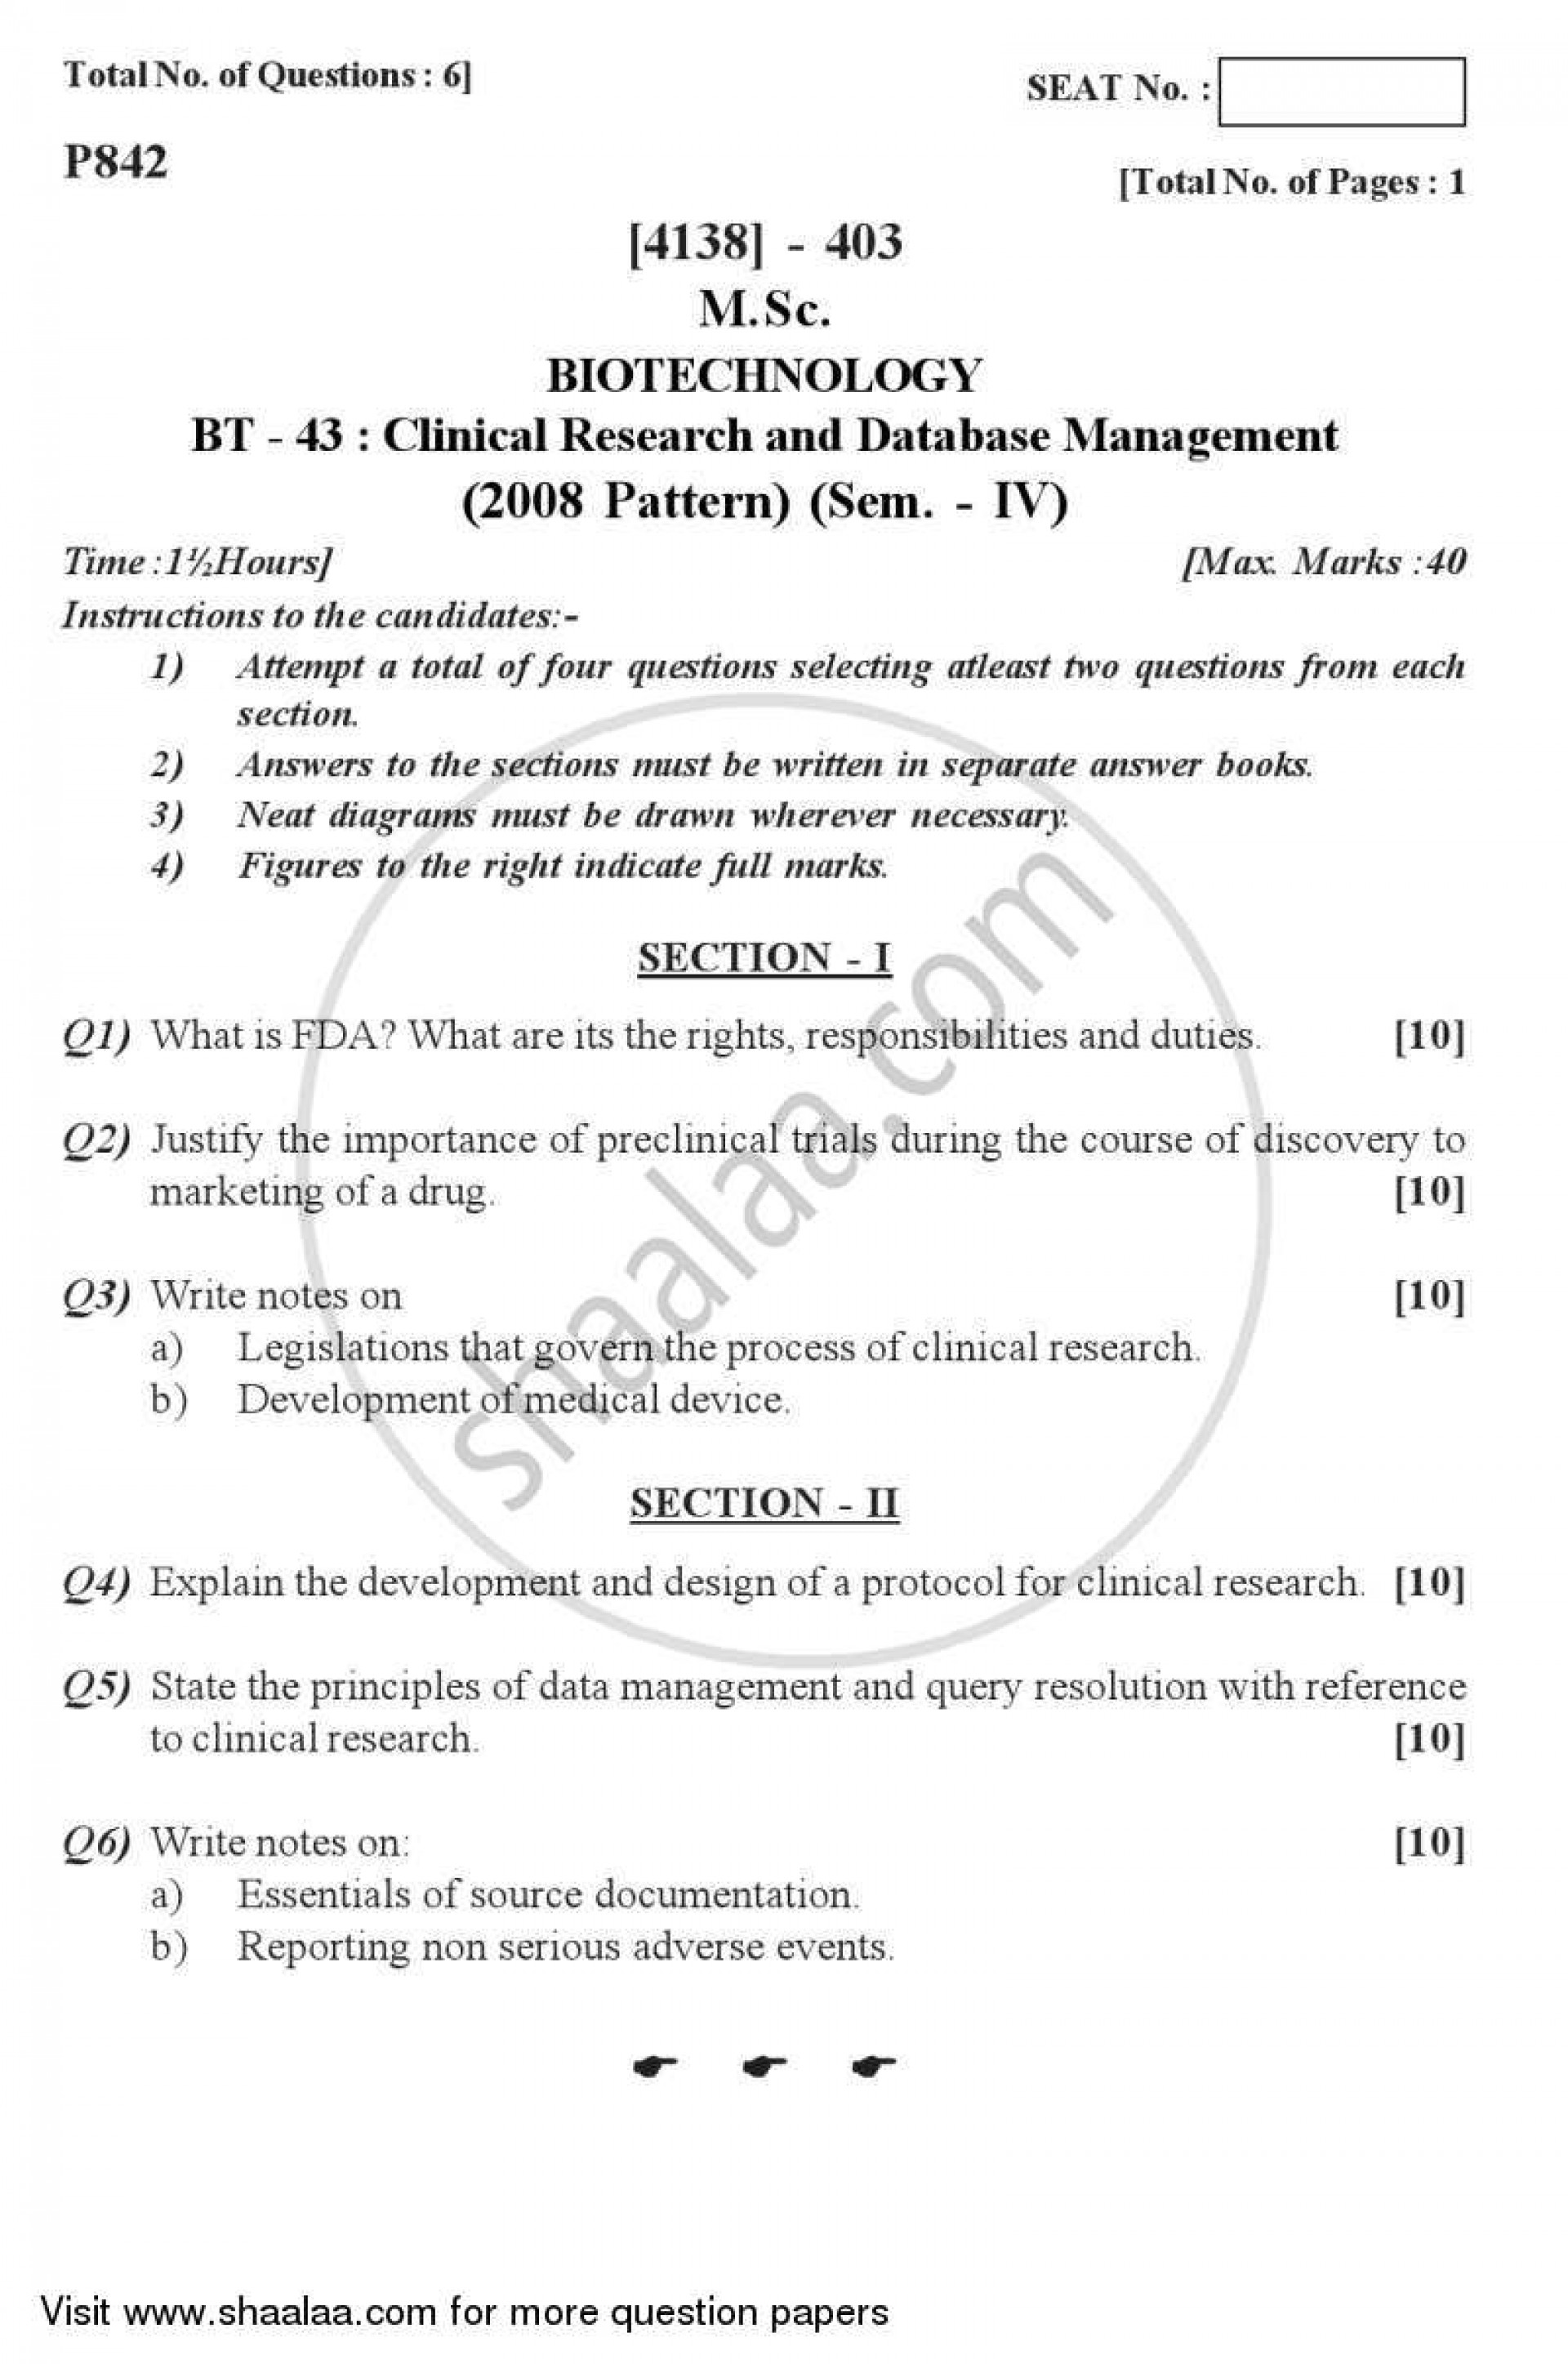 023 Research Paper Database University Of Pune Master Msc Clinical Management Biotech Semester 2012 25b9c0e3f87cb432992c22355b1608732 Sensational Academic Used By Japanese National Organizations Papers On Distributed Security Medical 1920